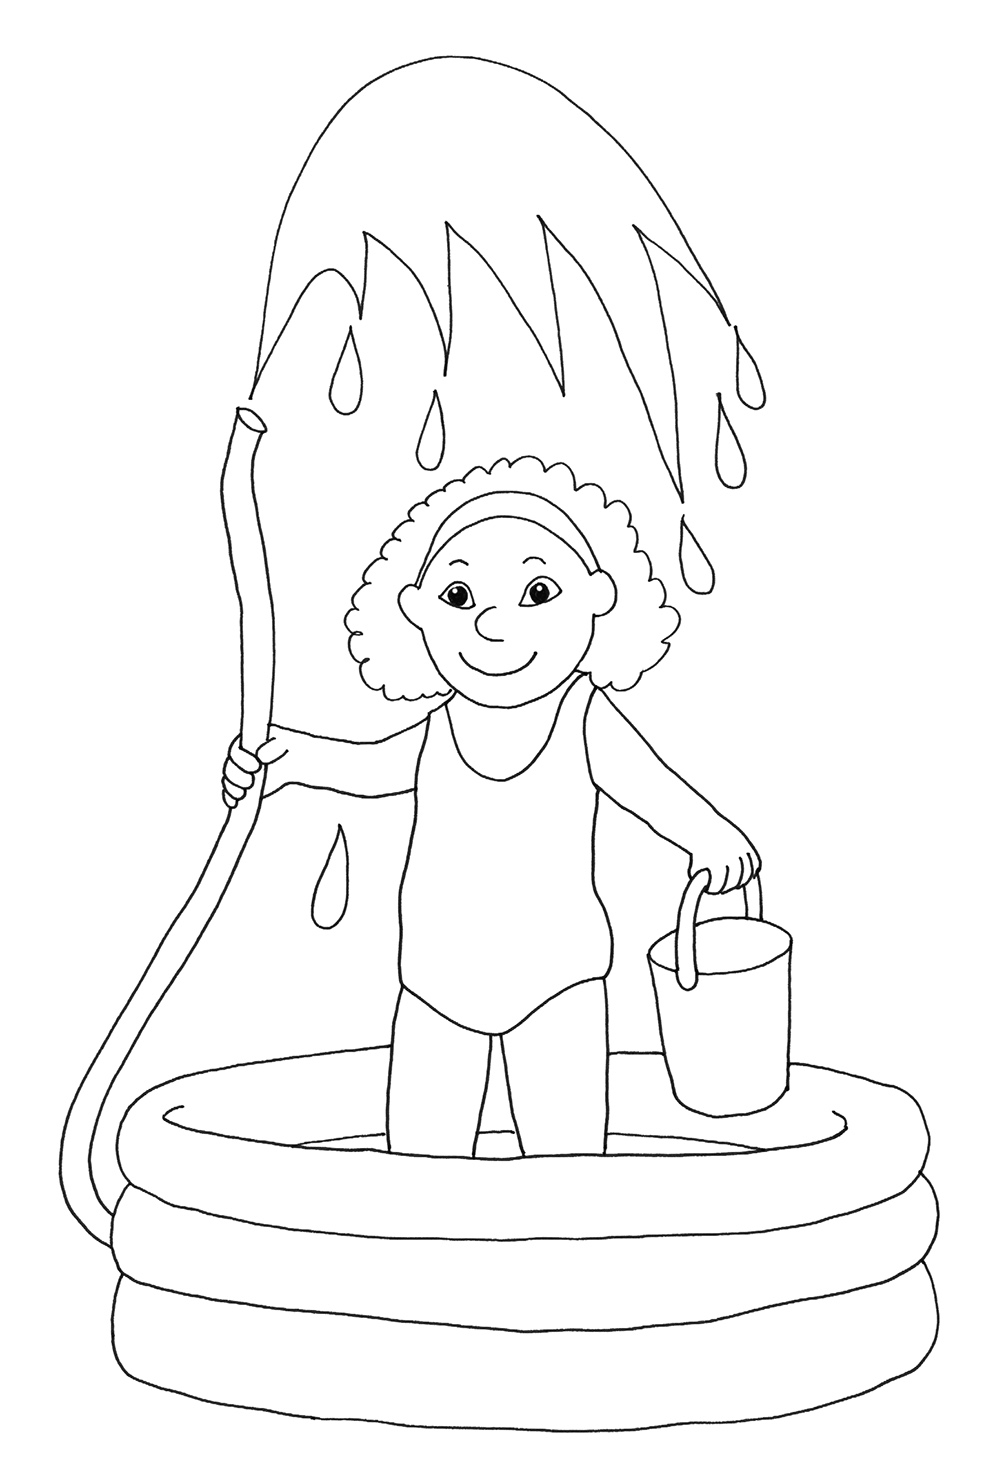 1004x1459 Summer Coloring Pages Older Kids Summer Coloring Pages